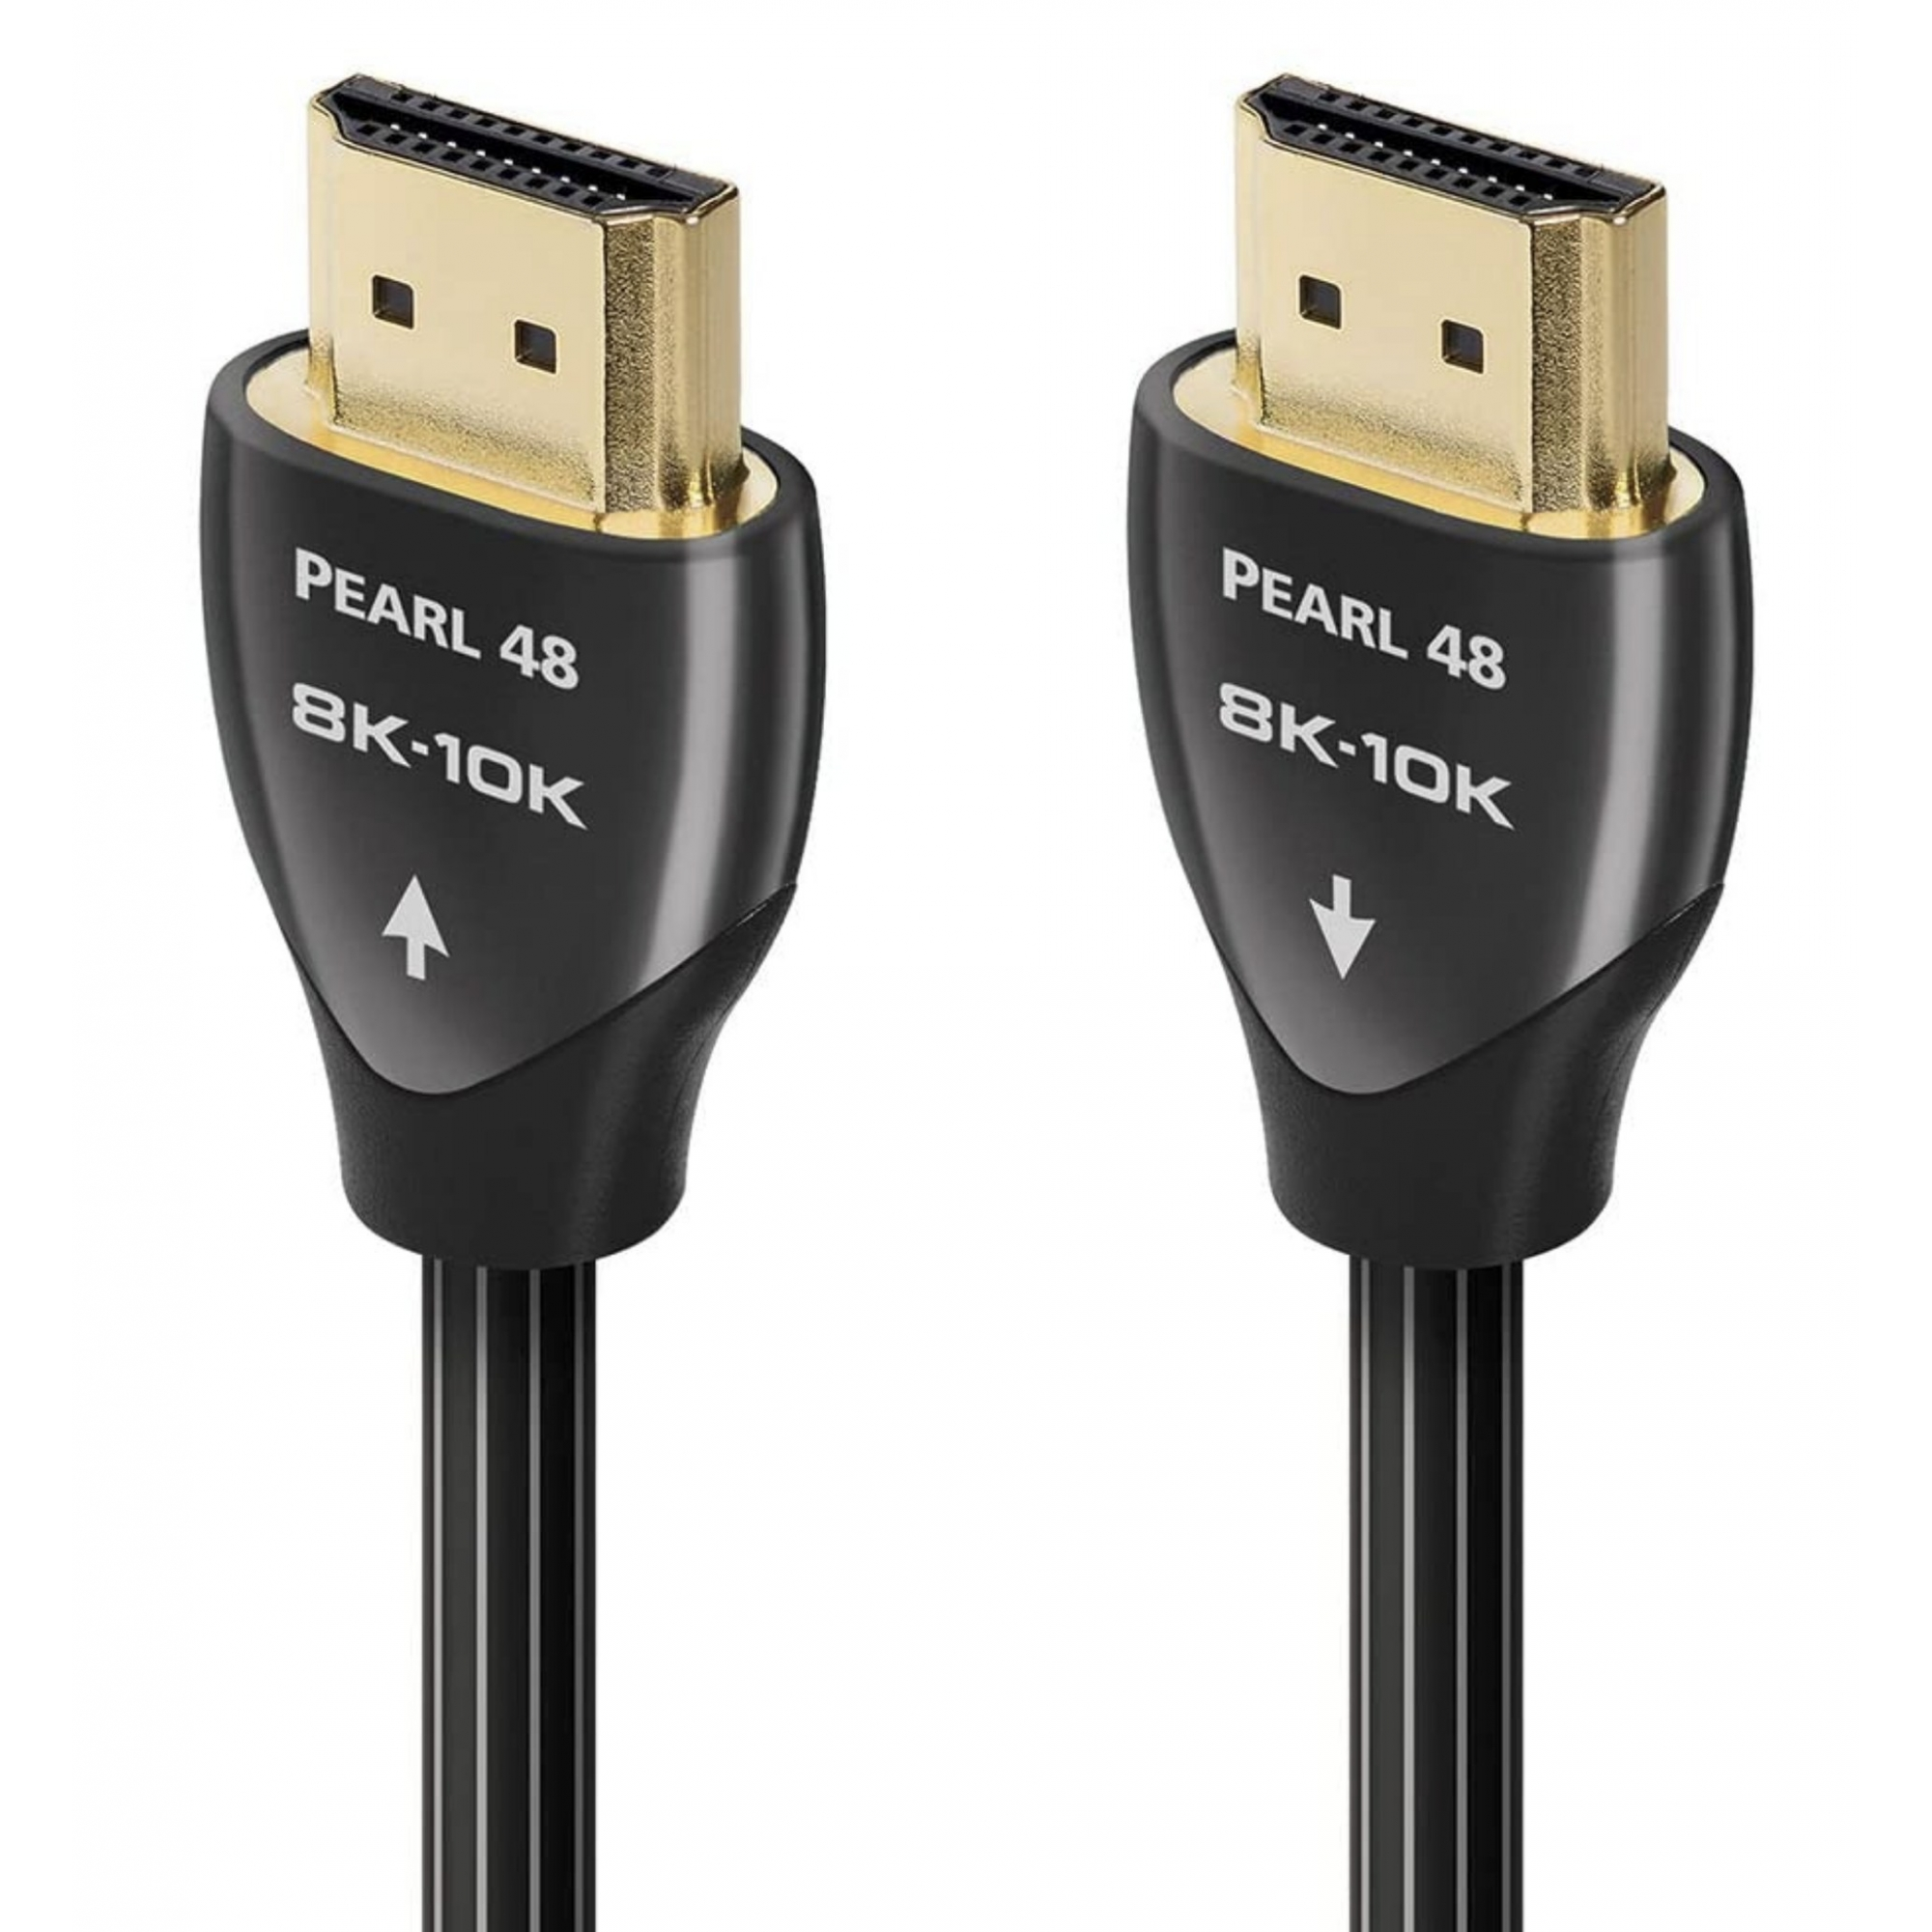 Cabo HDMI AudioQuest Pearl 48 - 8K-10K - 48Gbps - 2.25m